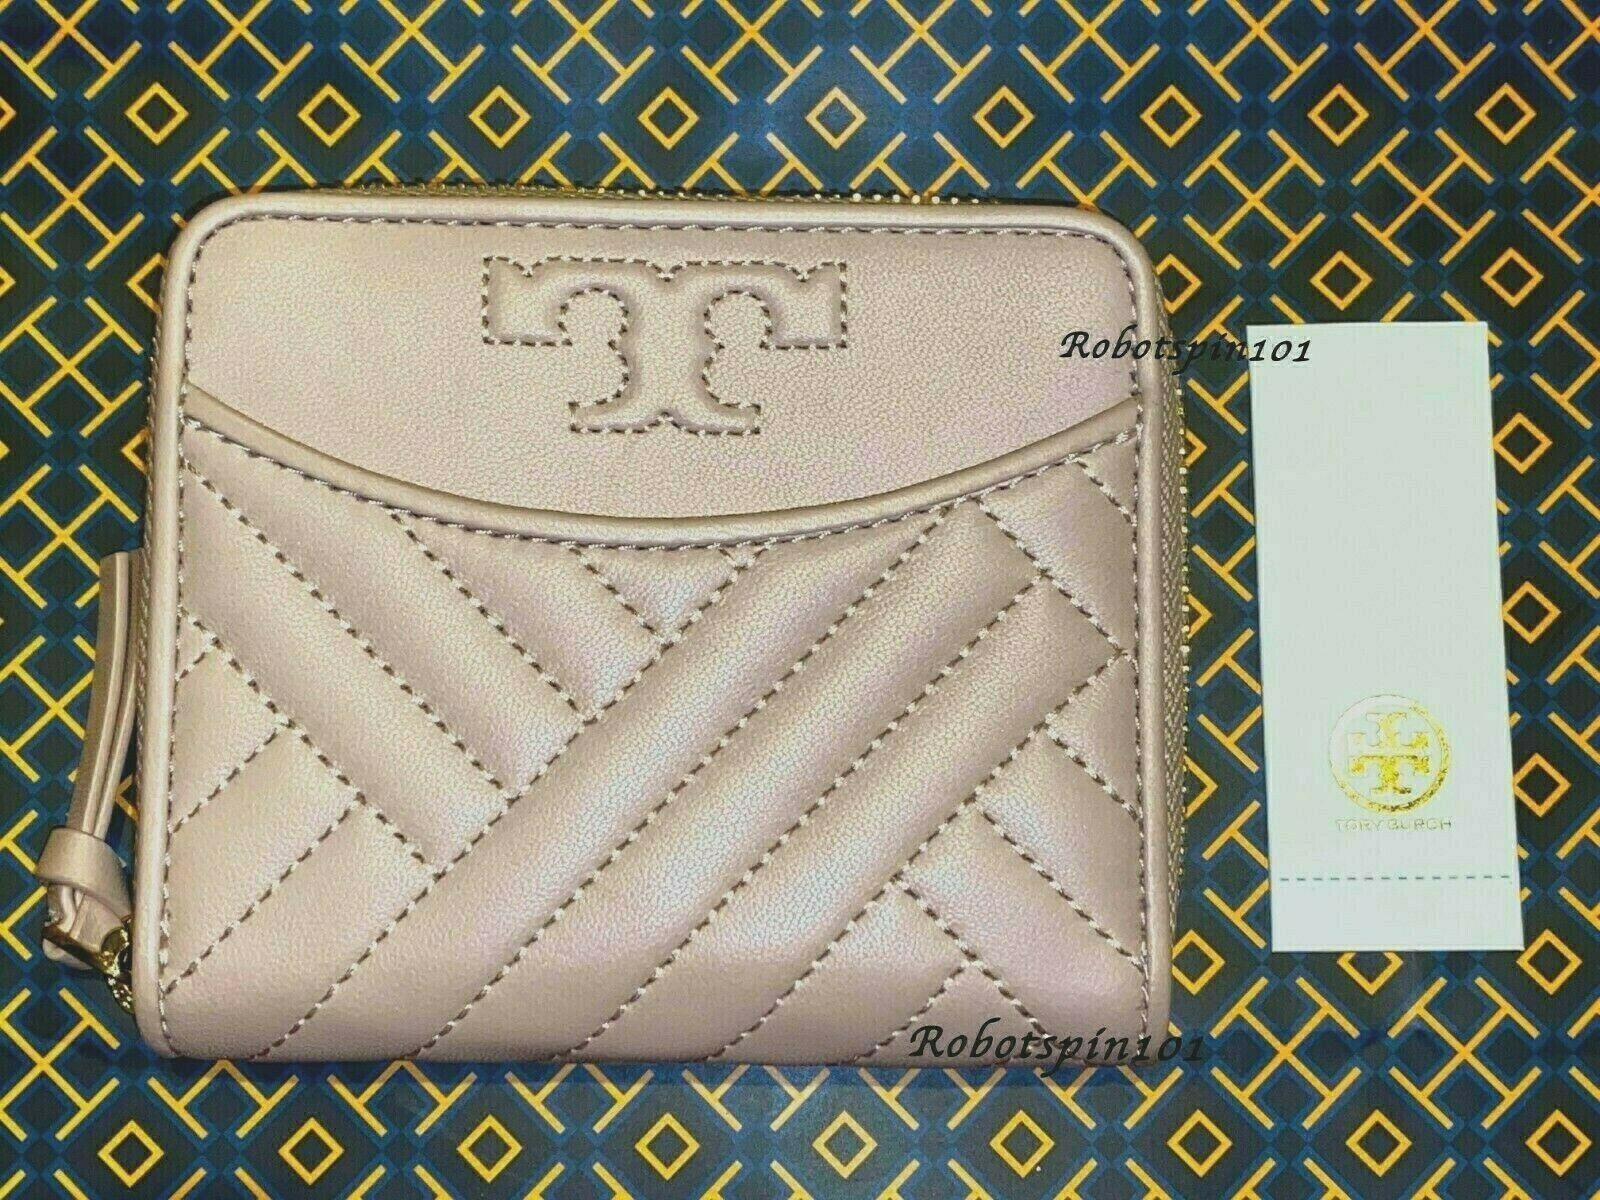 NWT Tory Burch Alexa Quilted Leather Medium Zip around Wallet Shell Pink